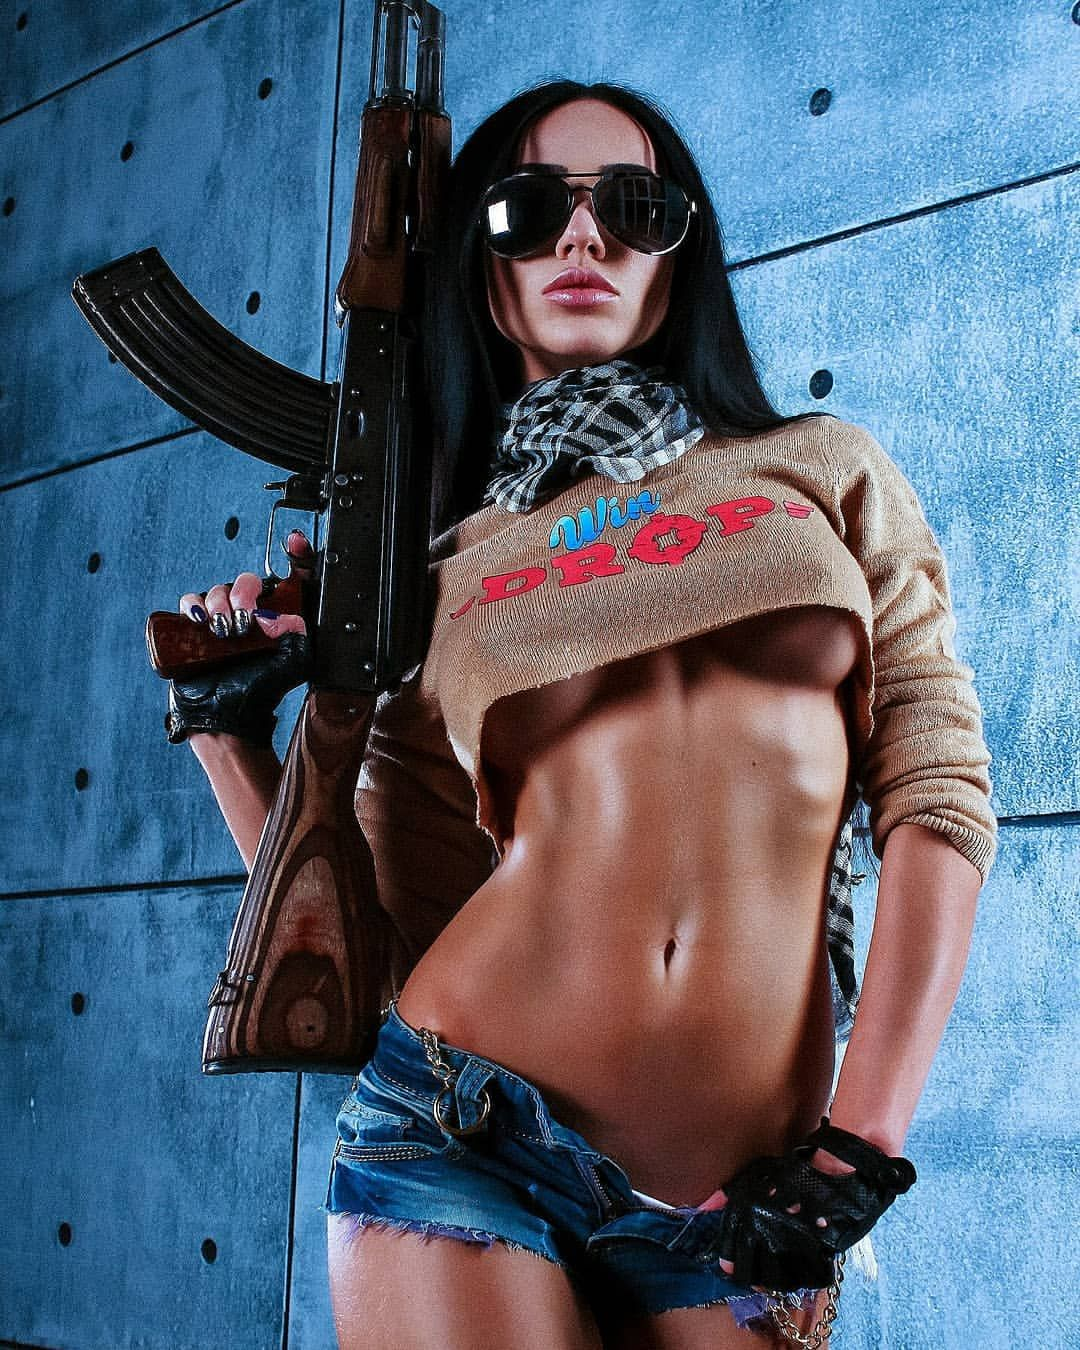 Gangster pictures of hot girls